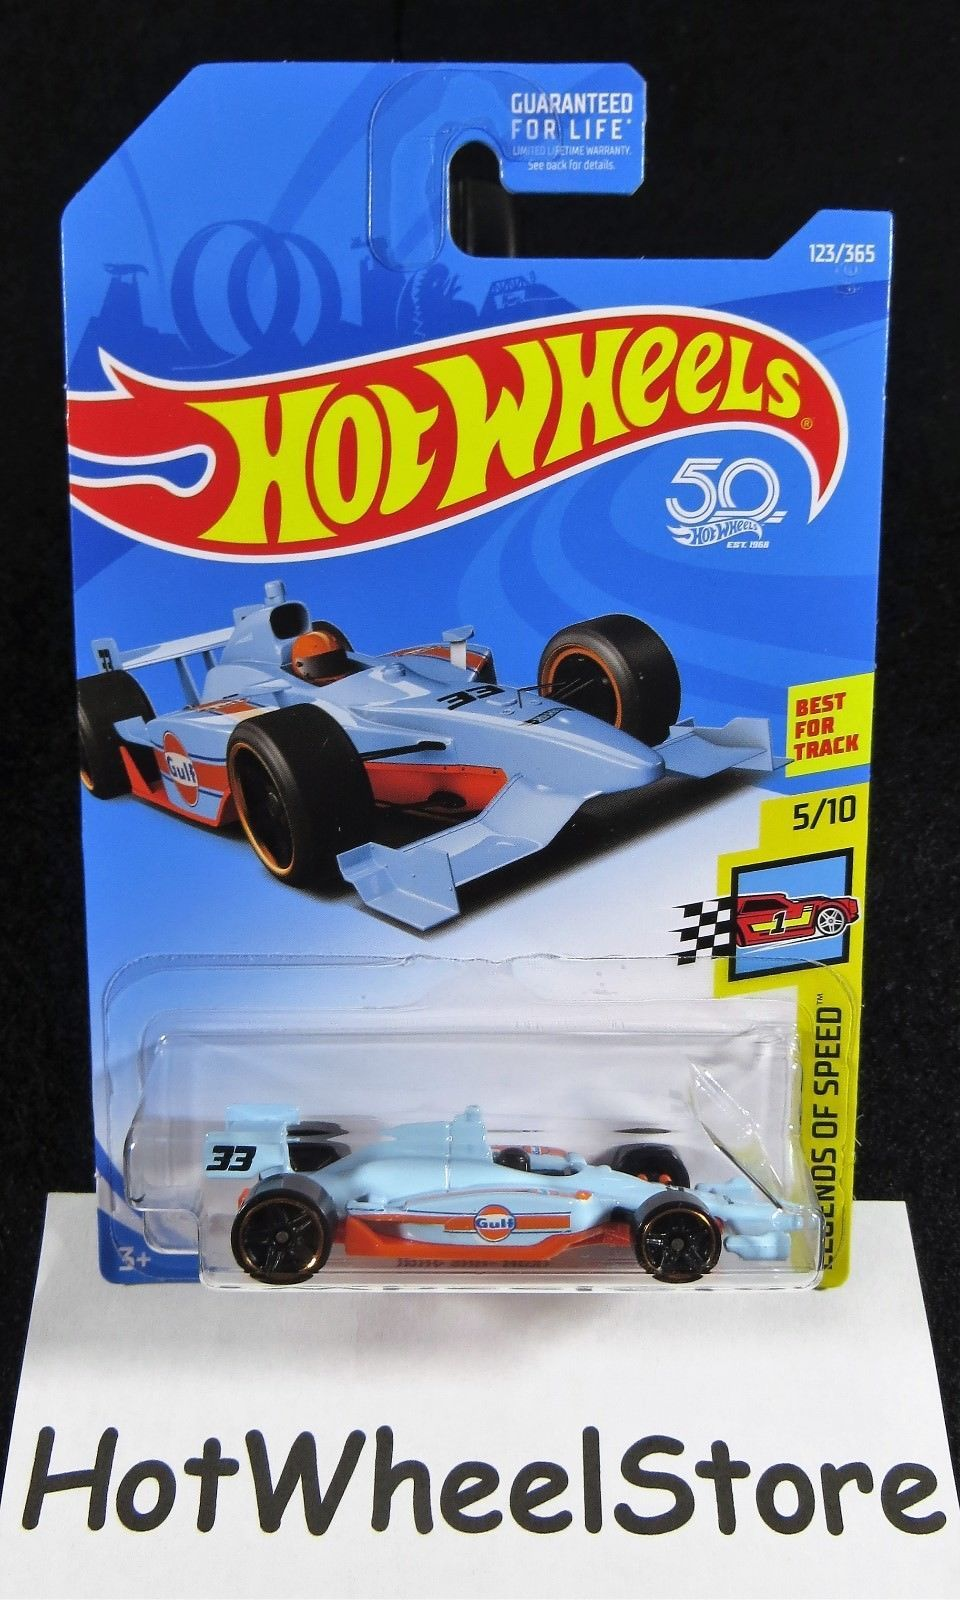 2018 Hot Wheels Indy 500 Oval Gulf Racing and 50 similar items